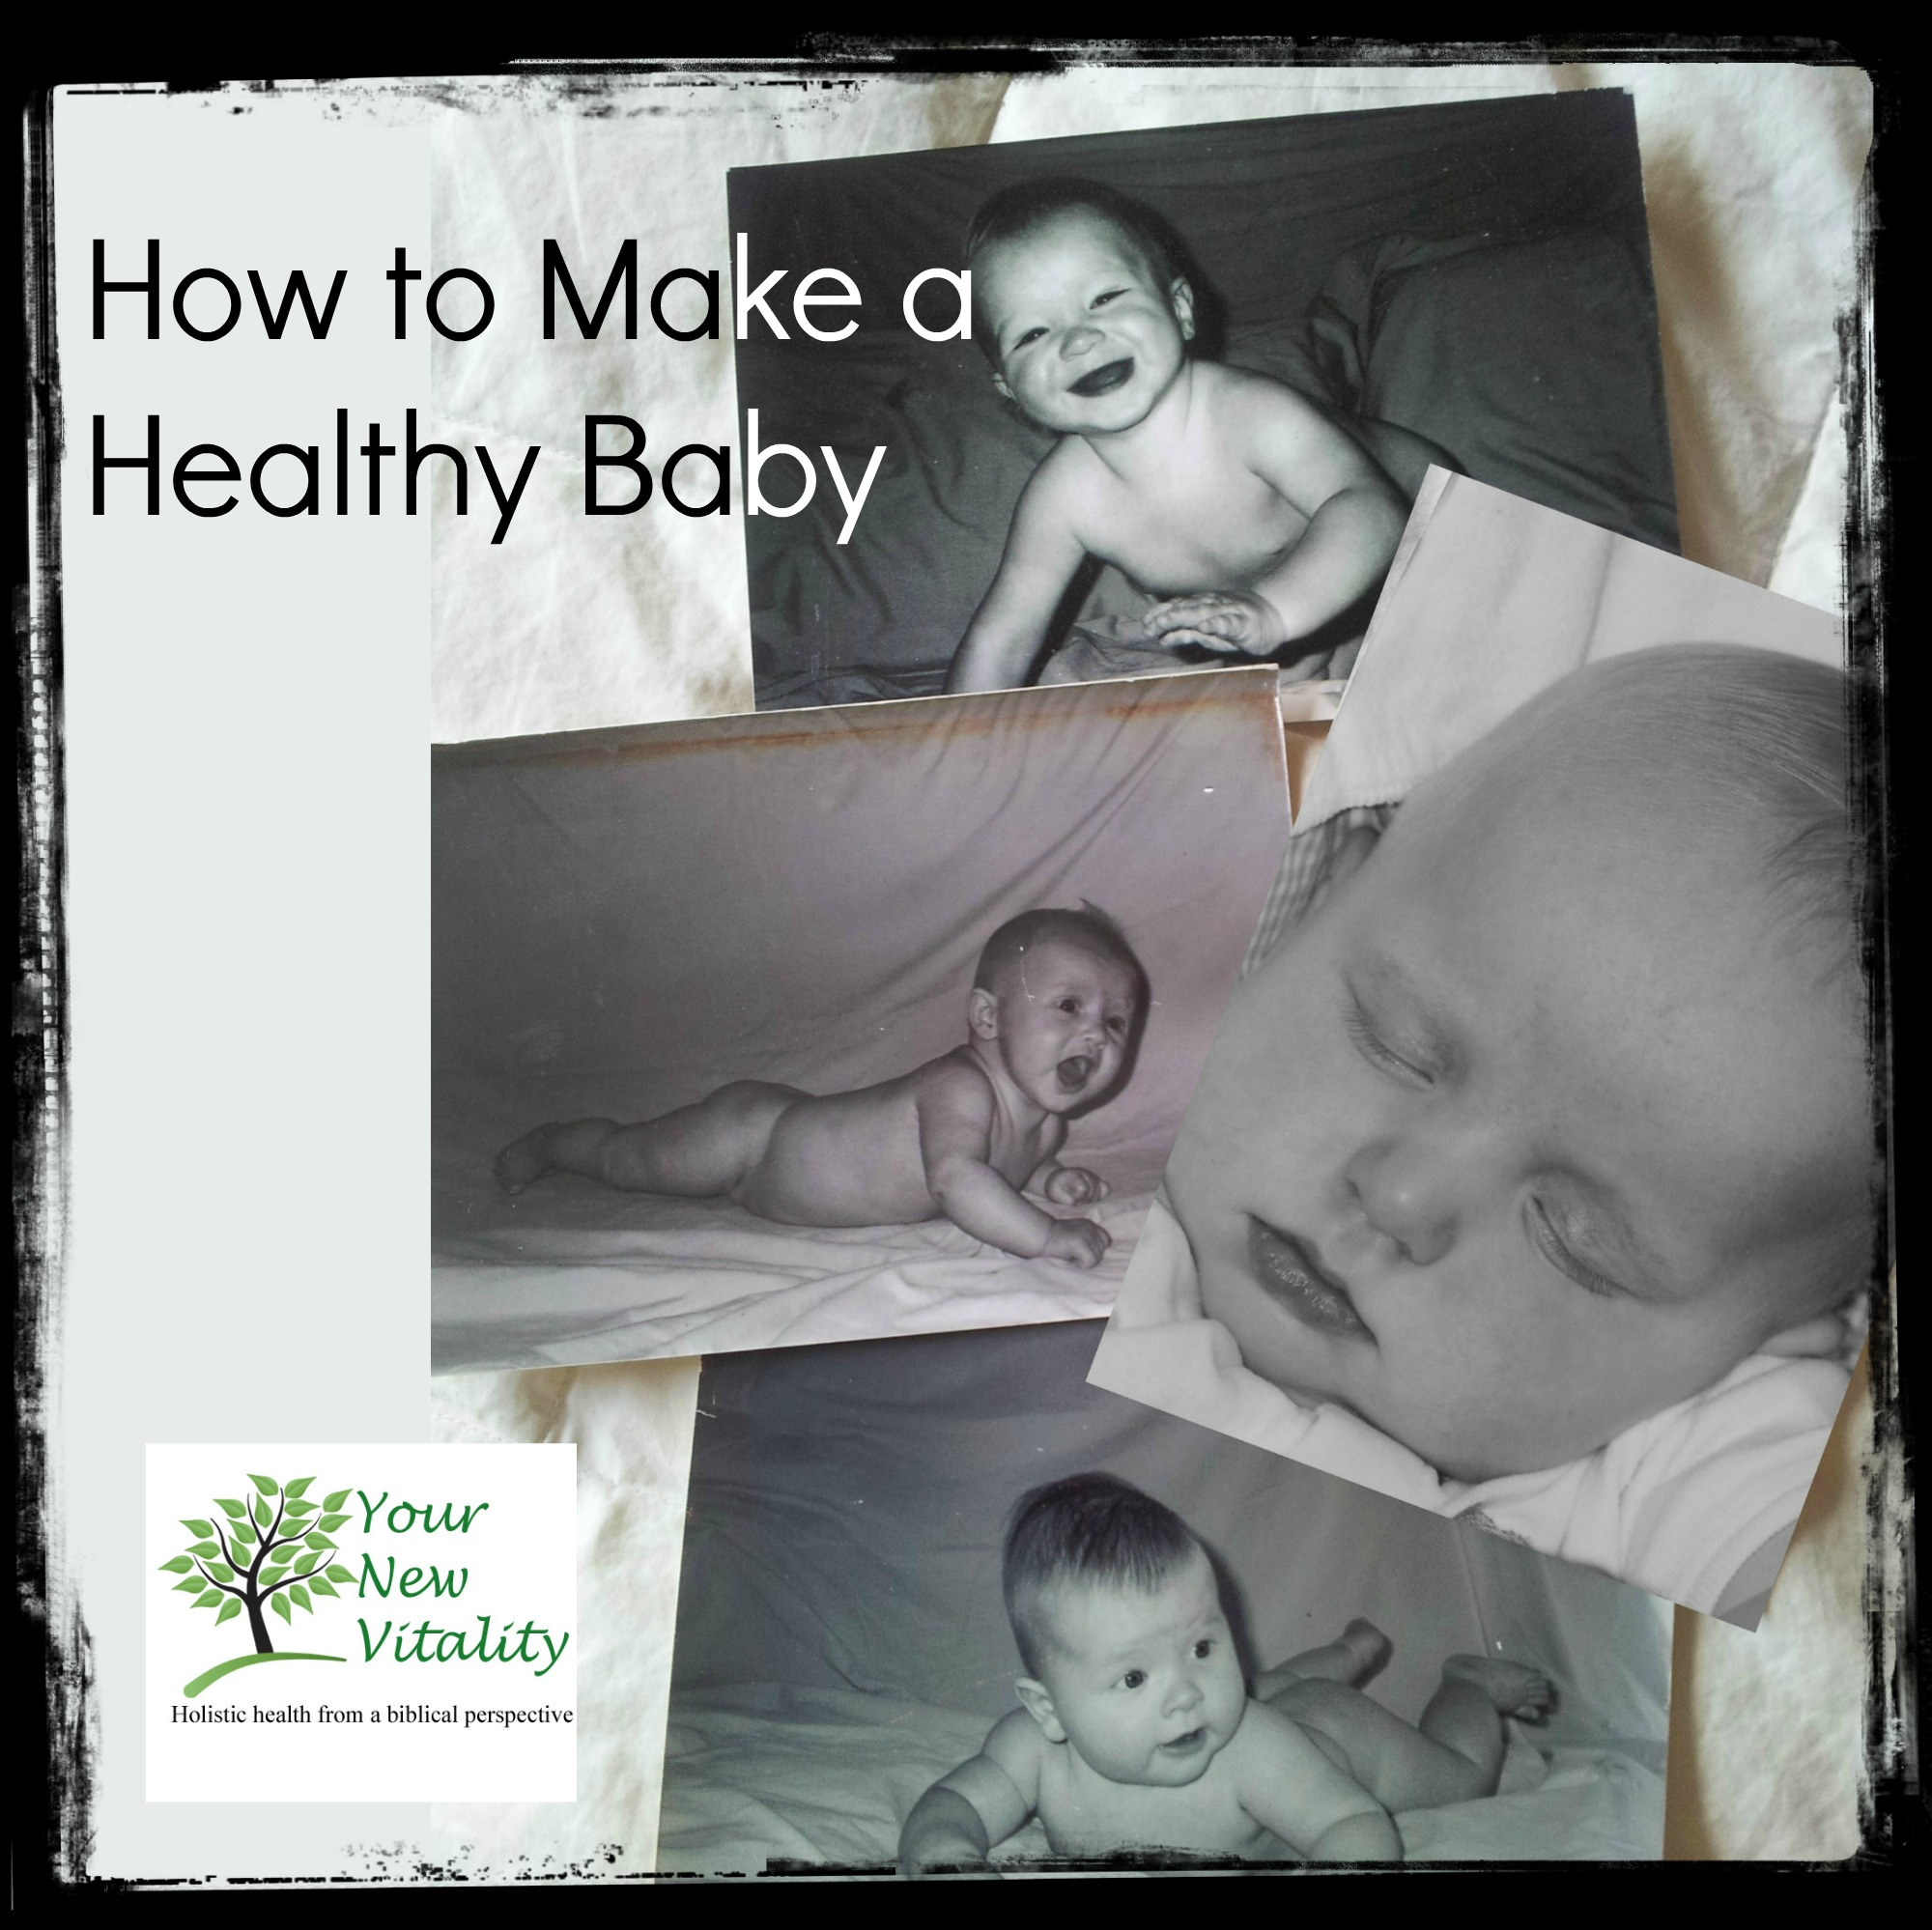 How to Make a Healthy Baby1